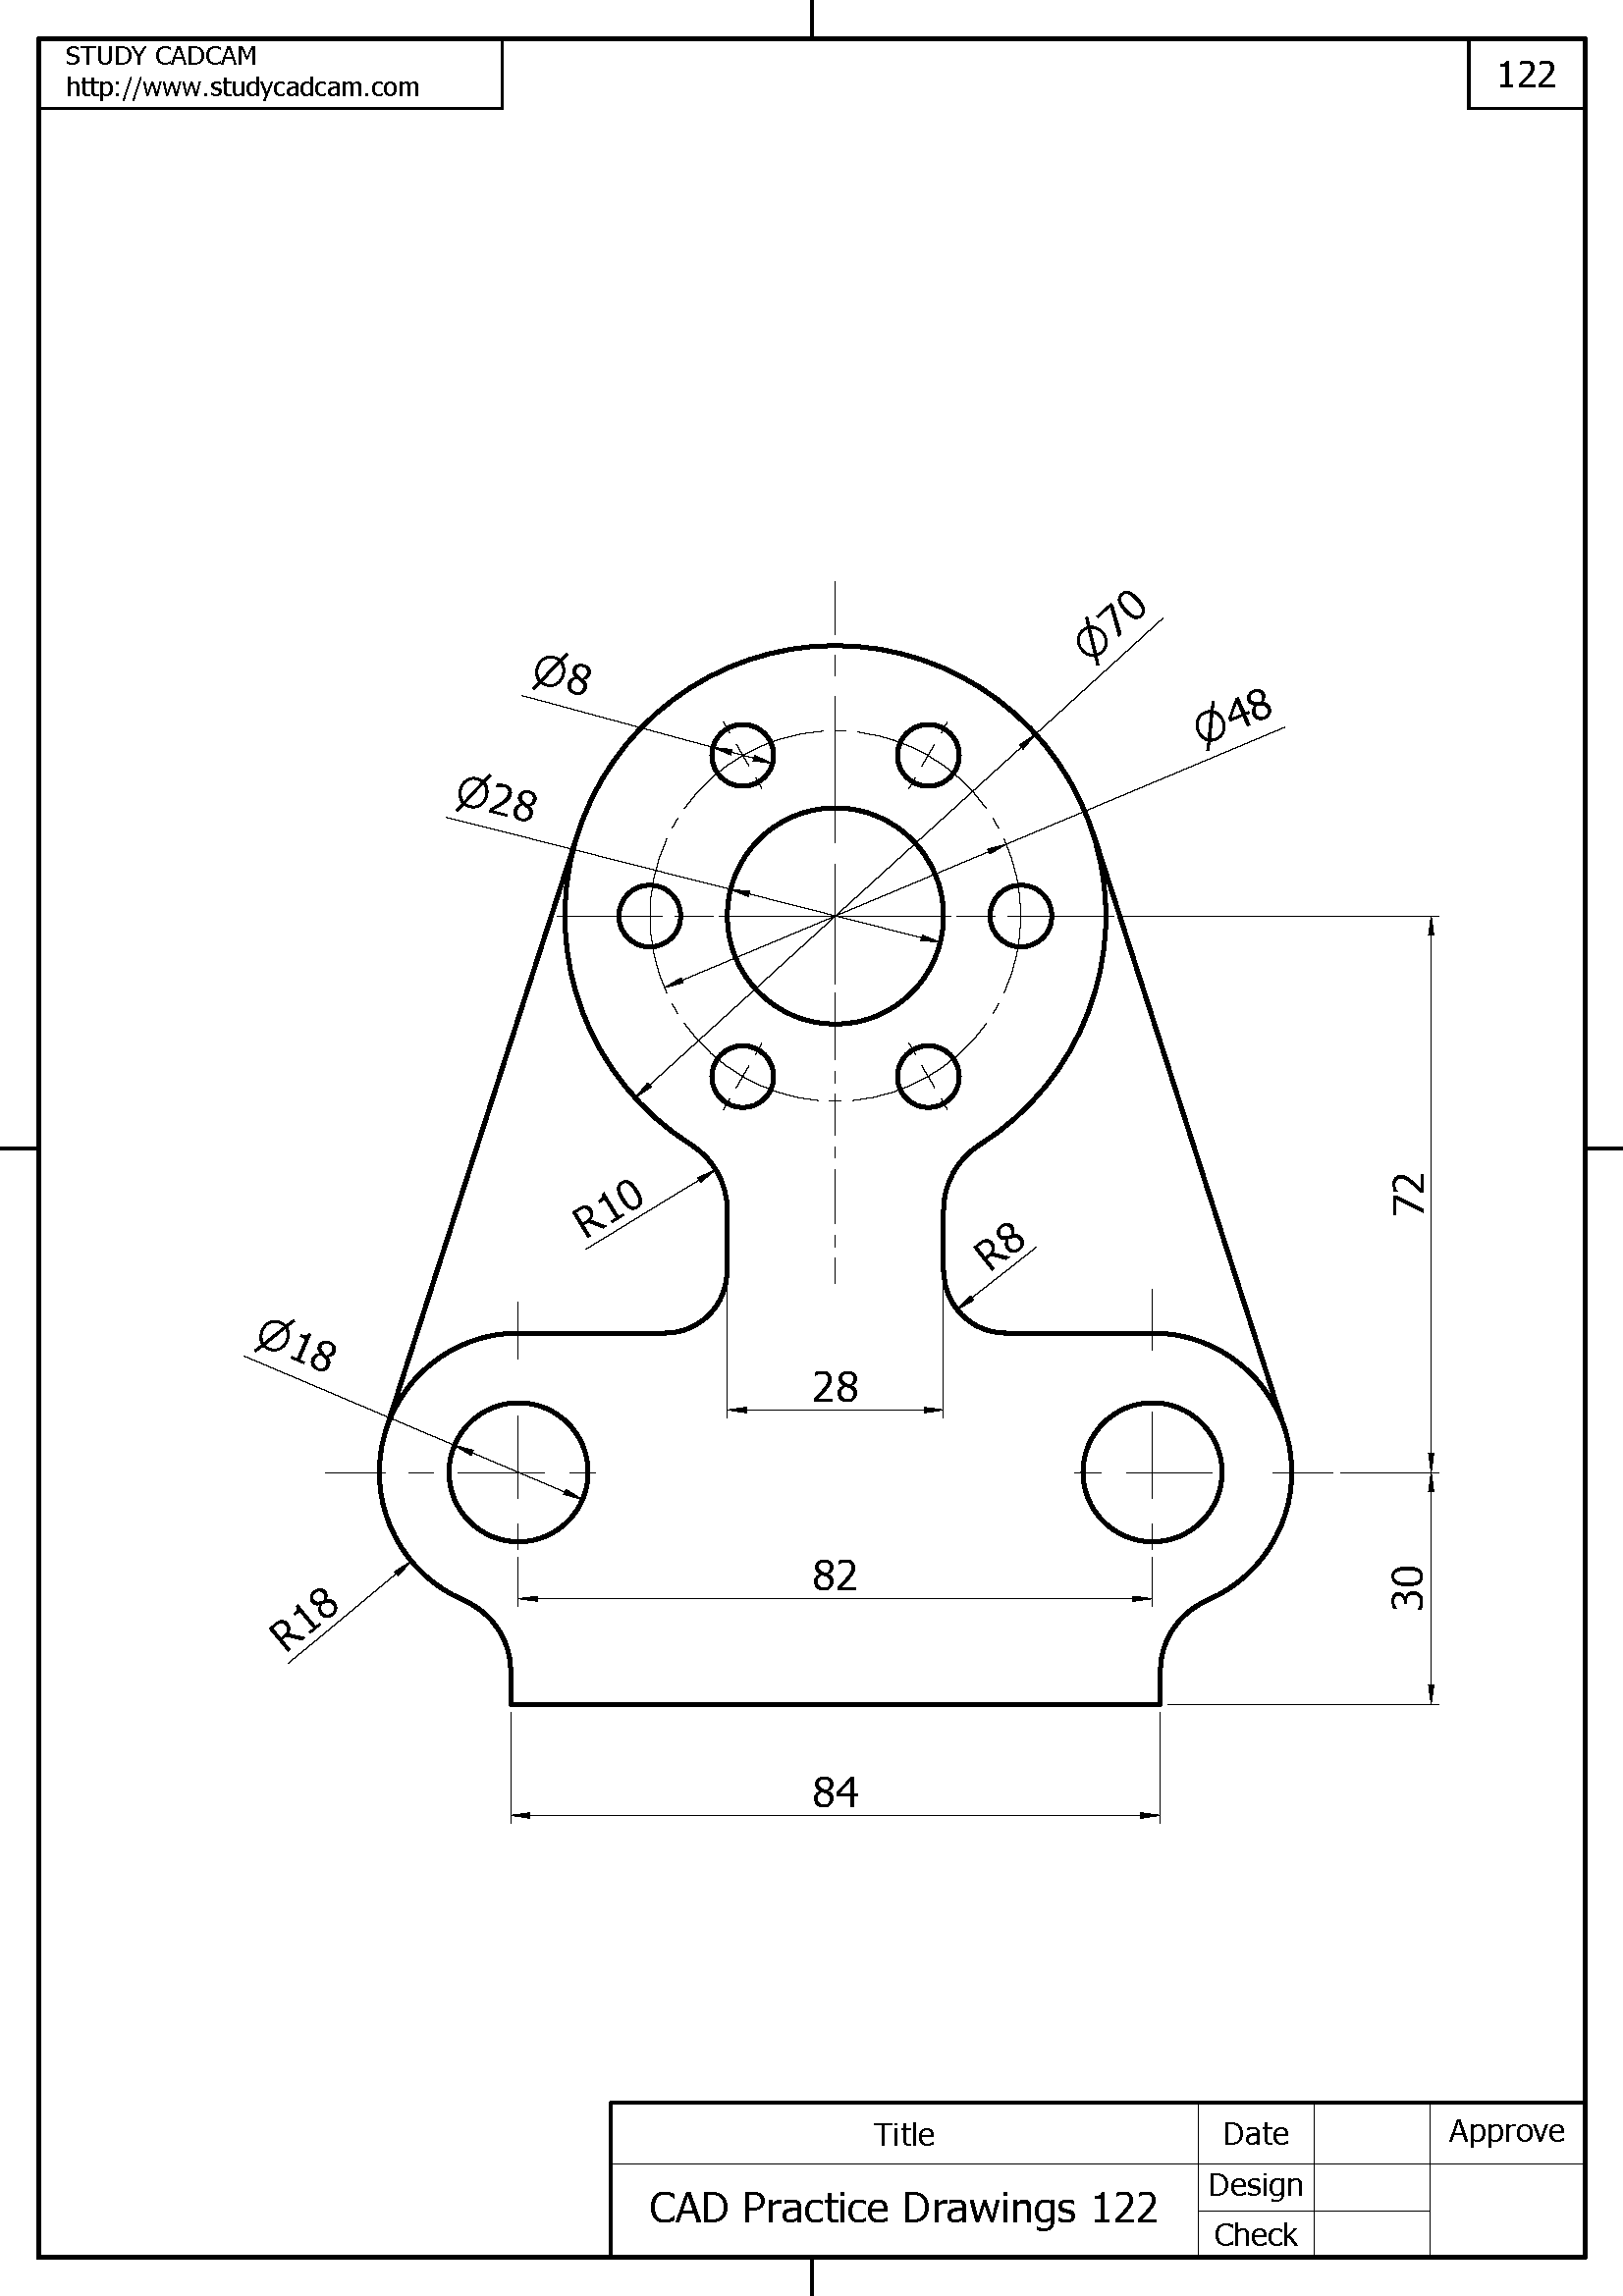 Autocad Mechanical Drawings at PaintingValley.com